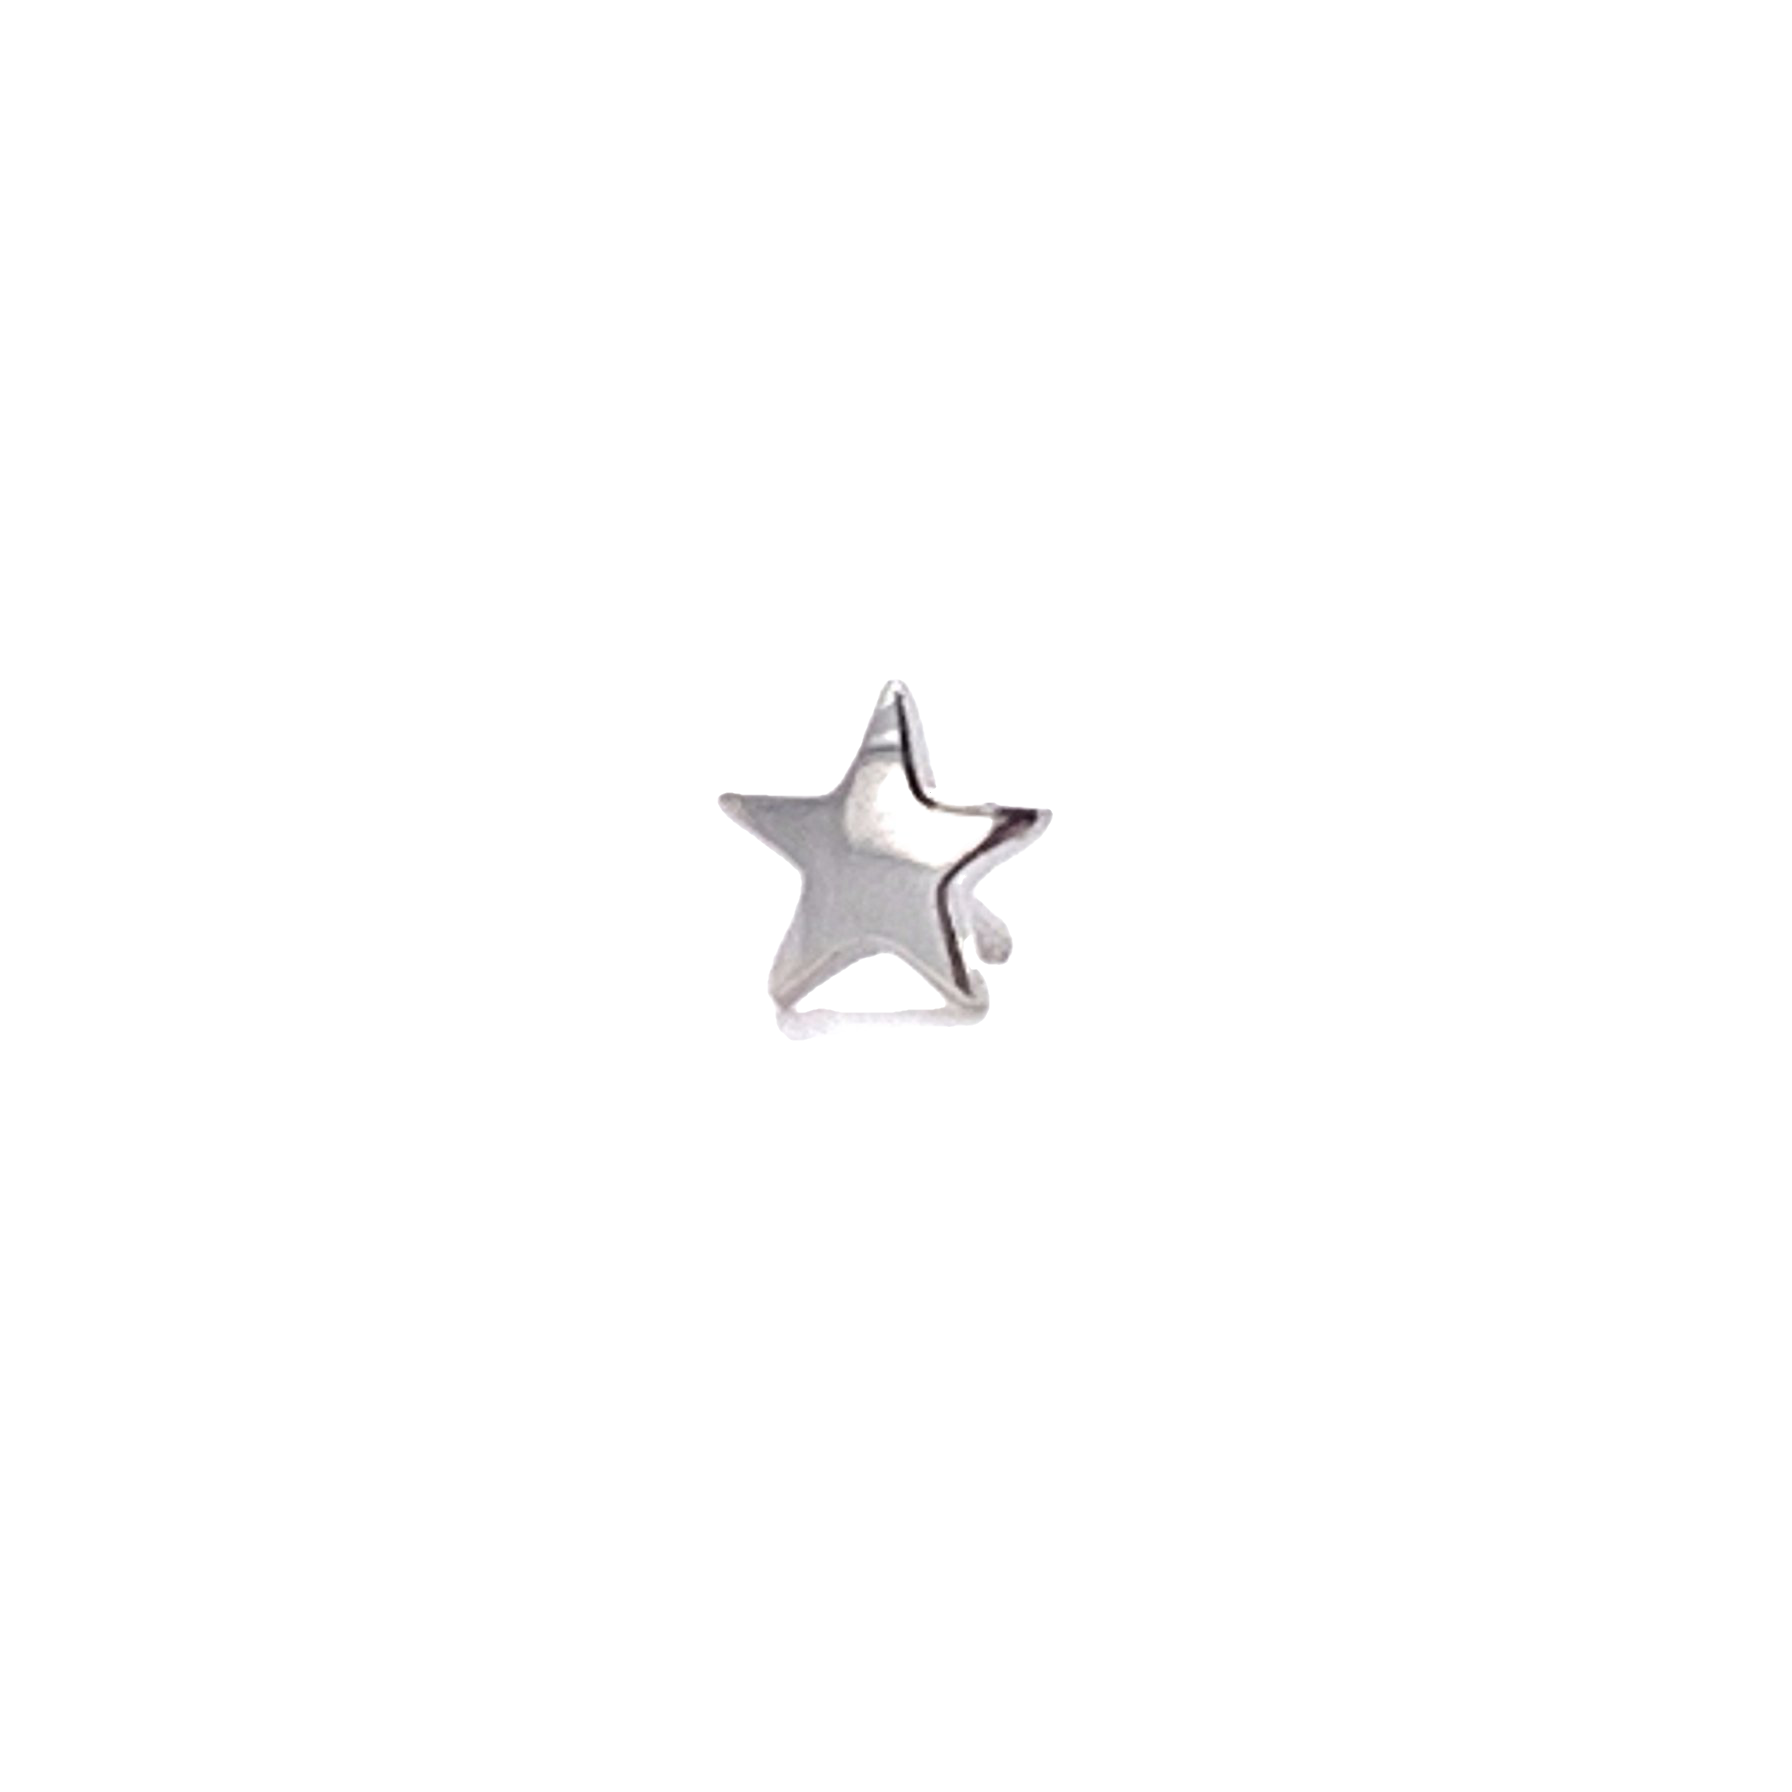 14Ct White Gold Star End Attachment